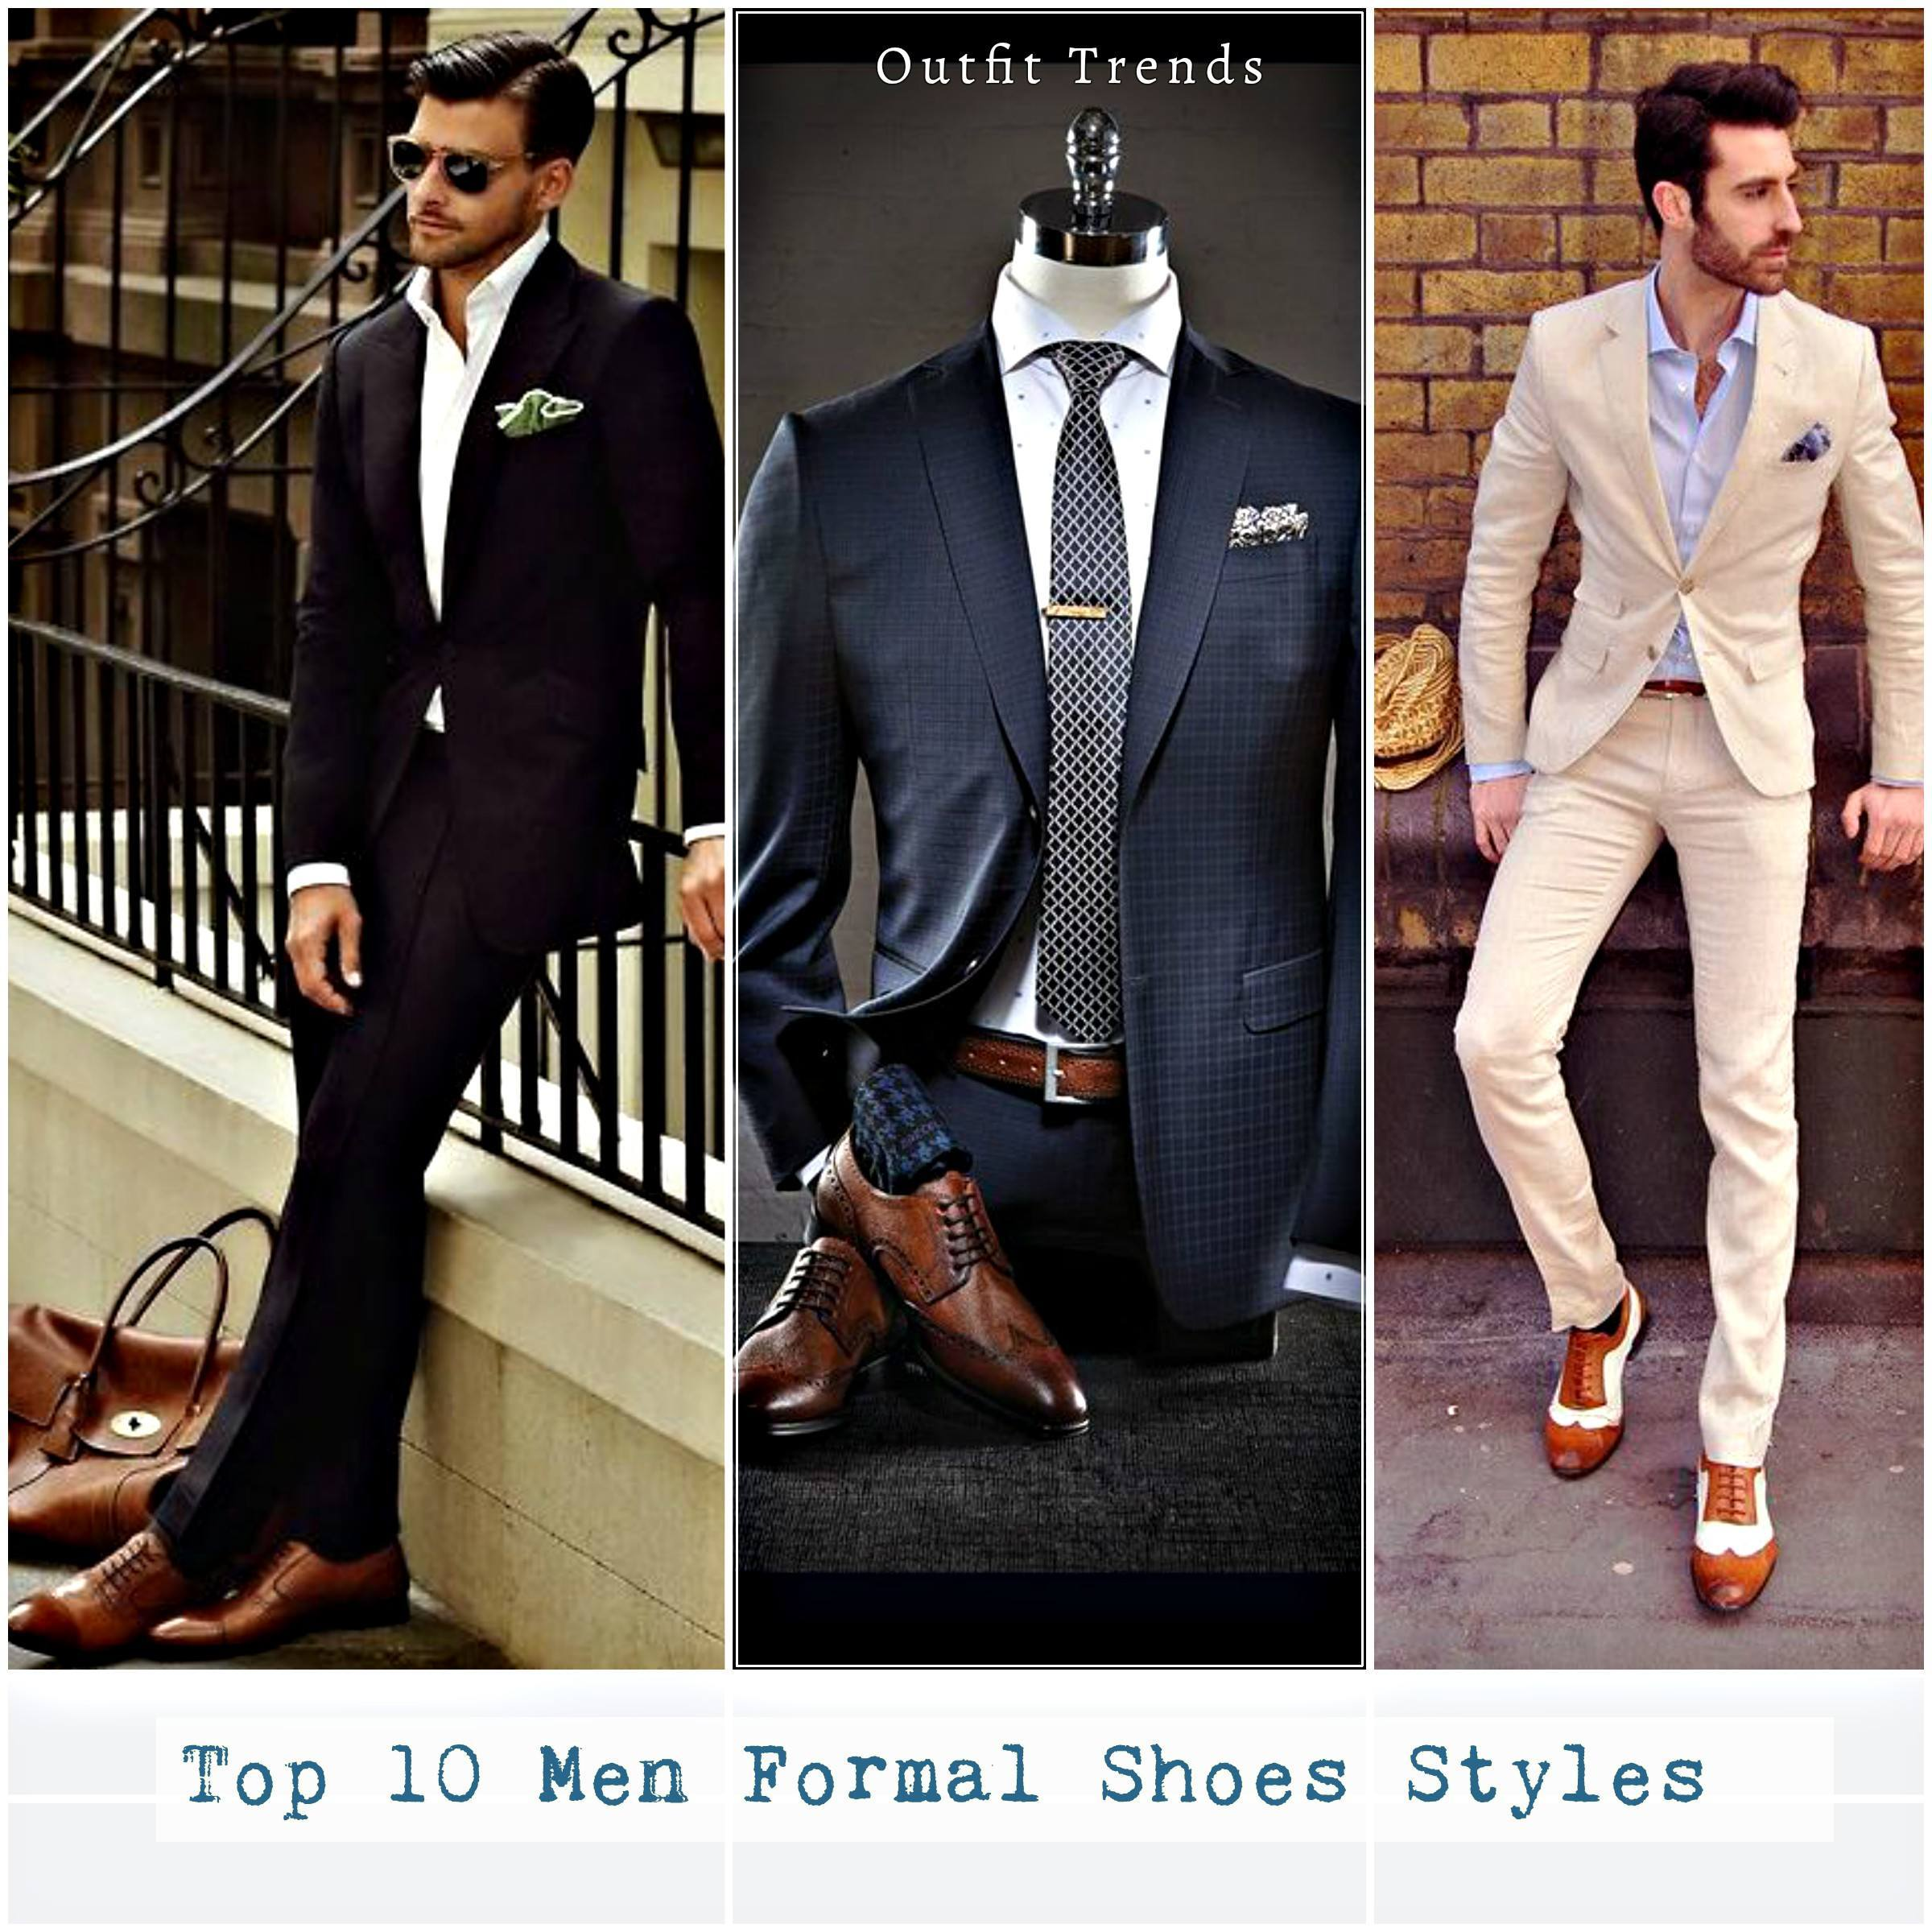 168129a0959683 Top 10 Men Formal Shoes Styles And Ideas How to Wear them. - Cheap ...